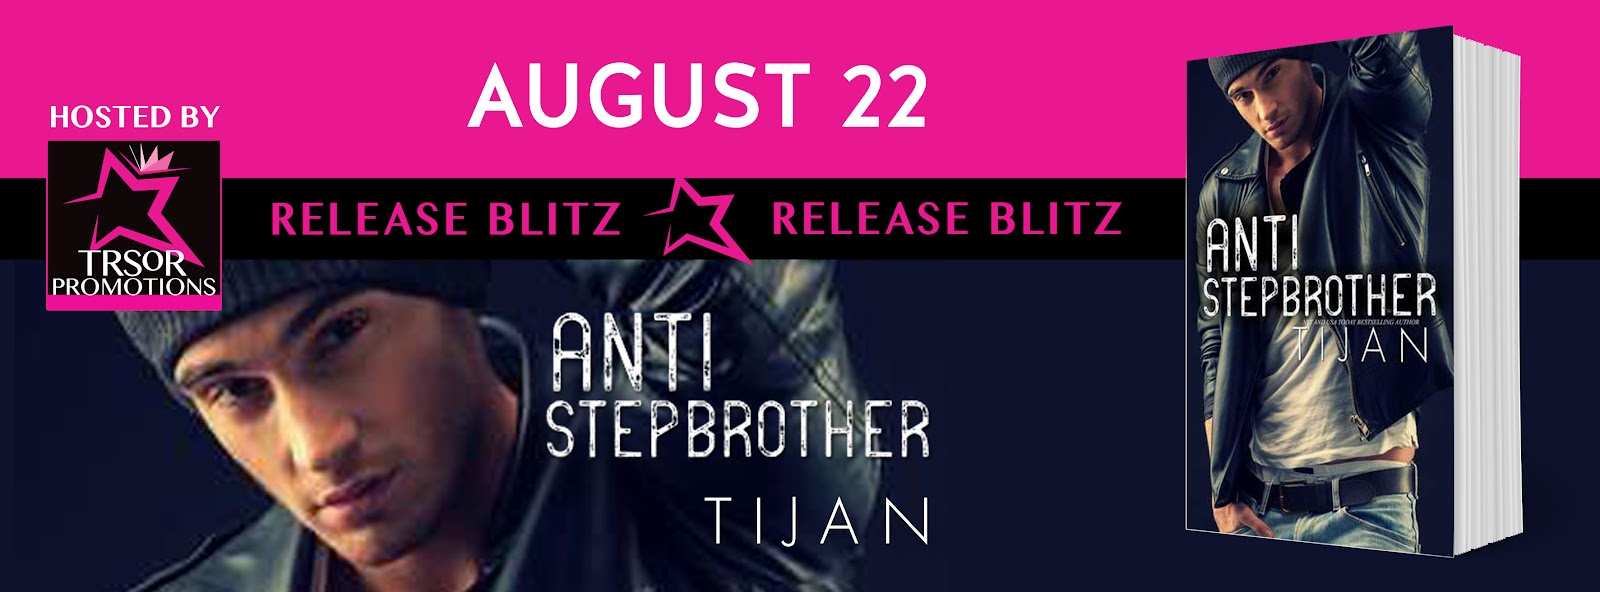 ANTI_STEP_BROTHER_RELEASE_BLITZ.jpg